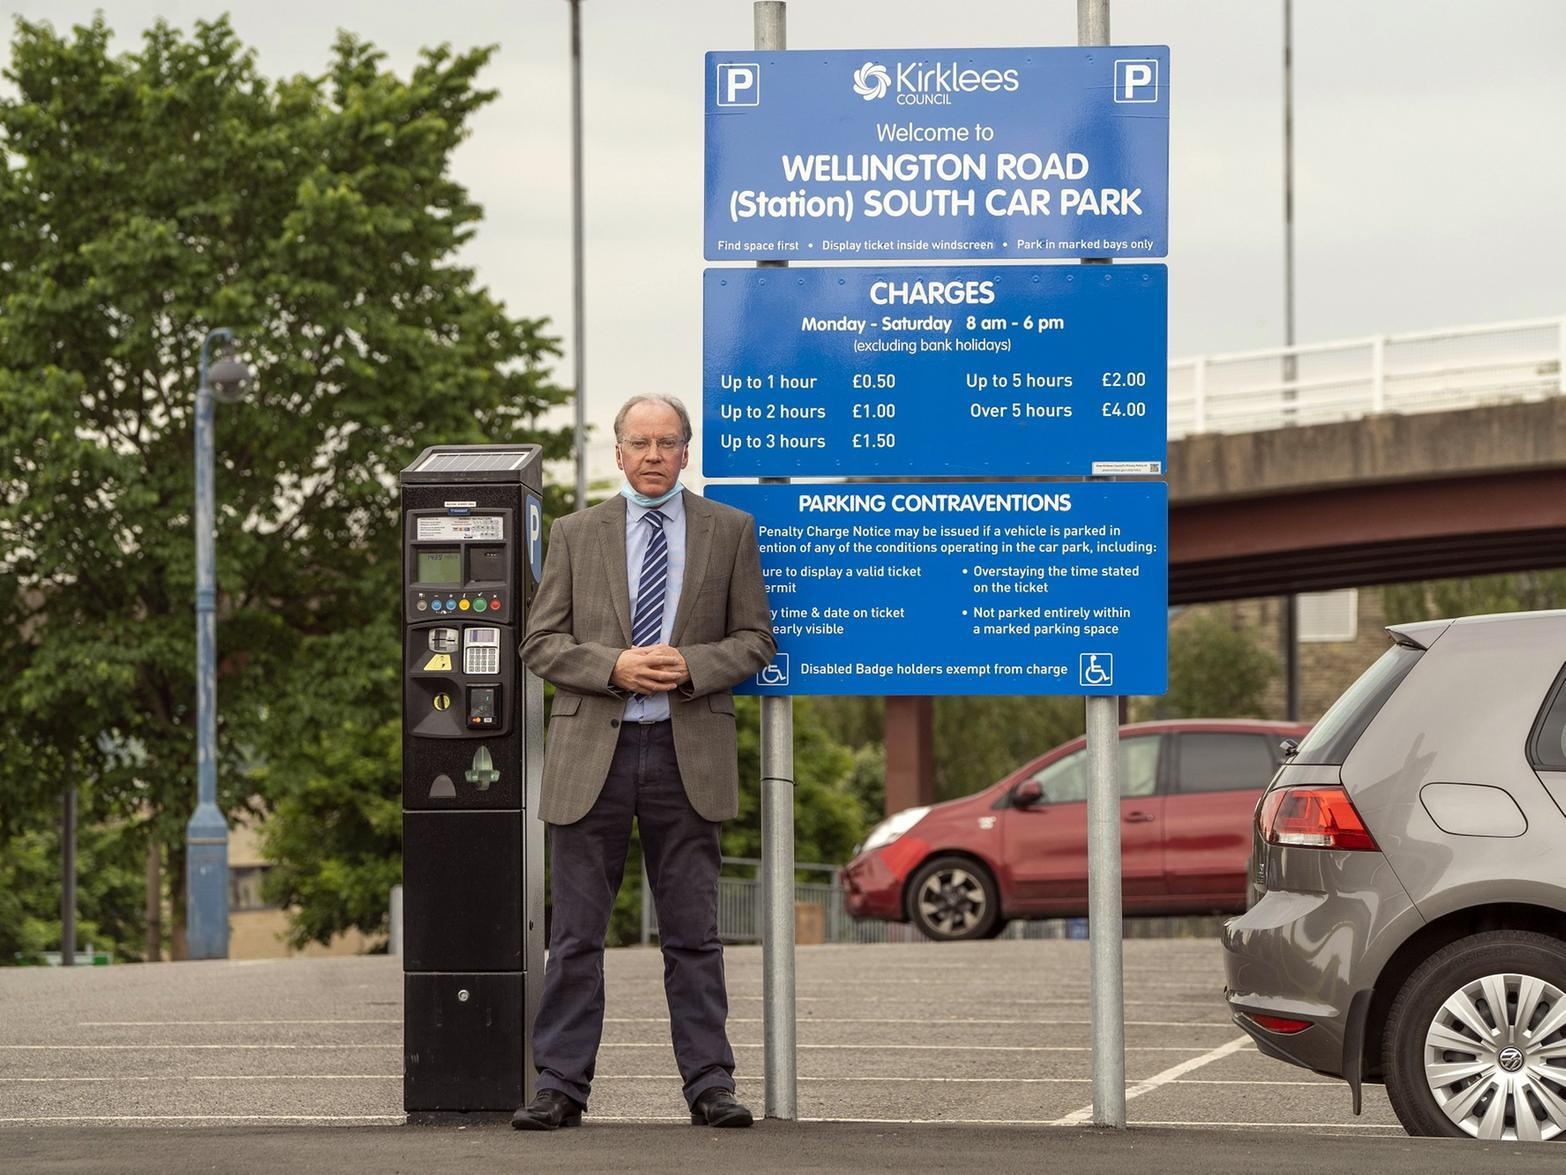 Council To Reignite Economy With Free Parking Across Dewsbury Dewsbury Reporter